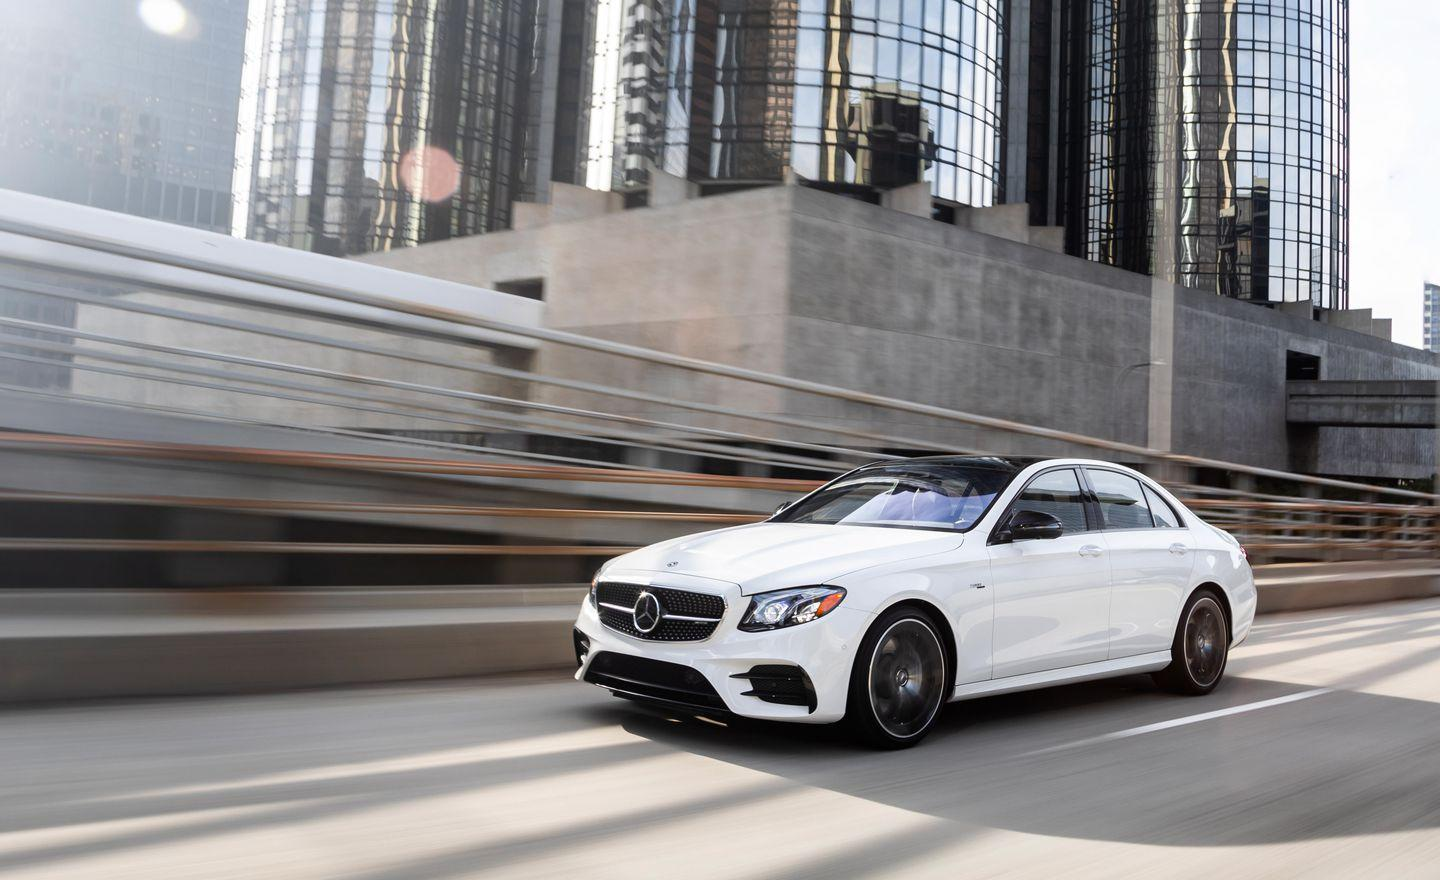 <p>All of the E53 models come with a reasonably comprehensive level of standard equipment and a host of AMG signature touches to differentiate them from plebian E-class models. </p>